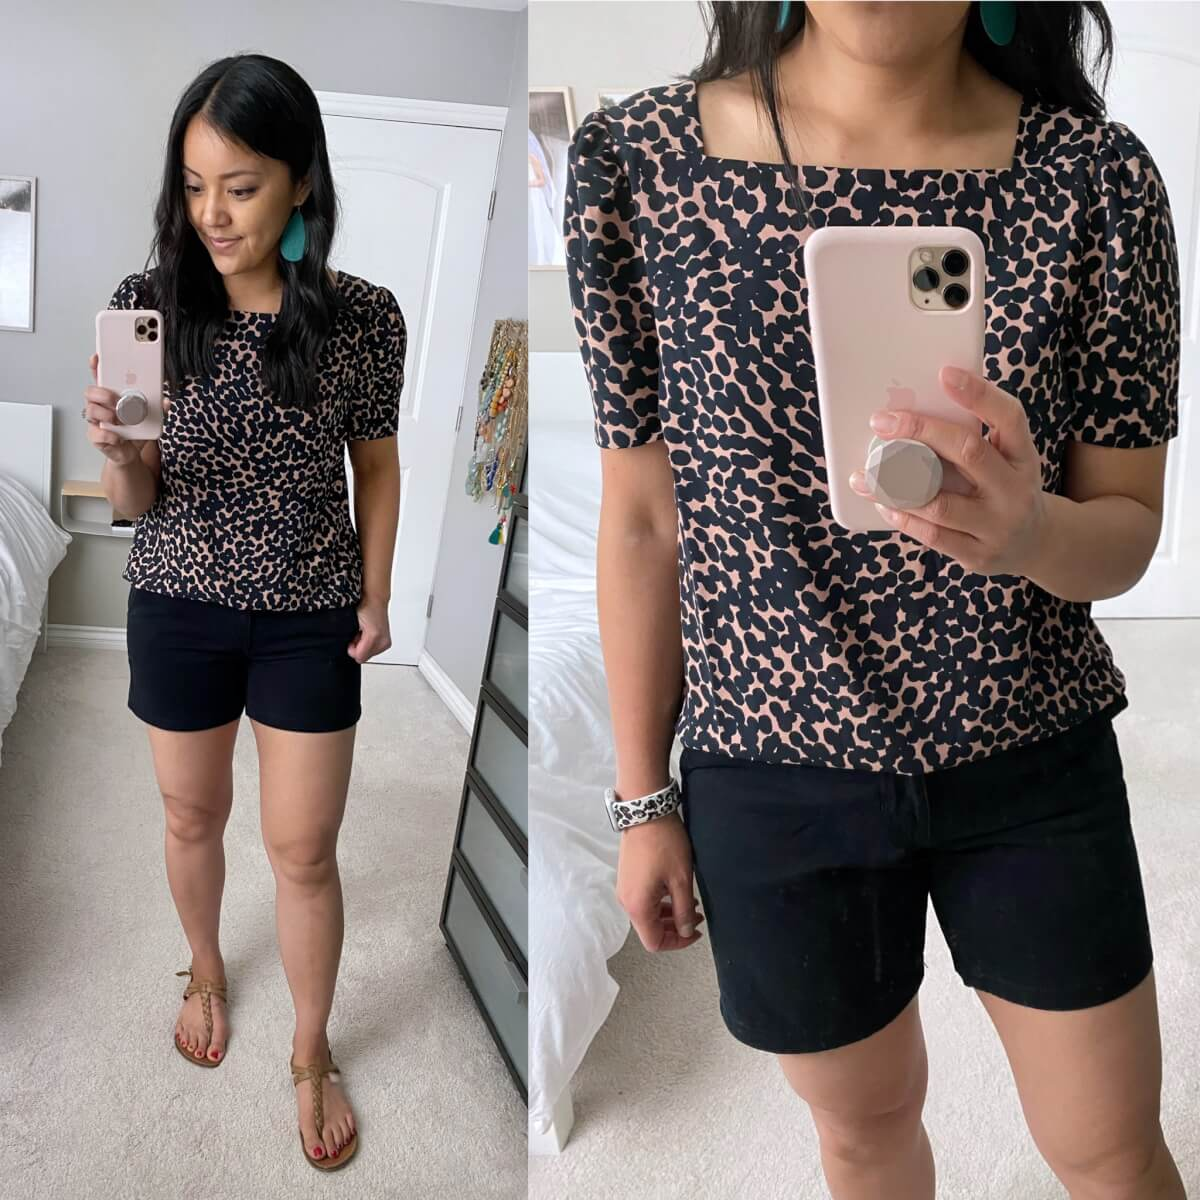 Nicer Casual Outfit: Amazon square neck navy and camel spotted blouse + black shorts + nude t-strap sandals + teal earrings close up